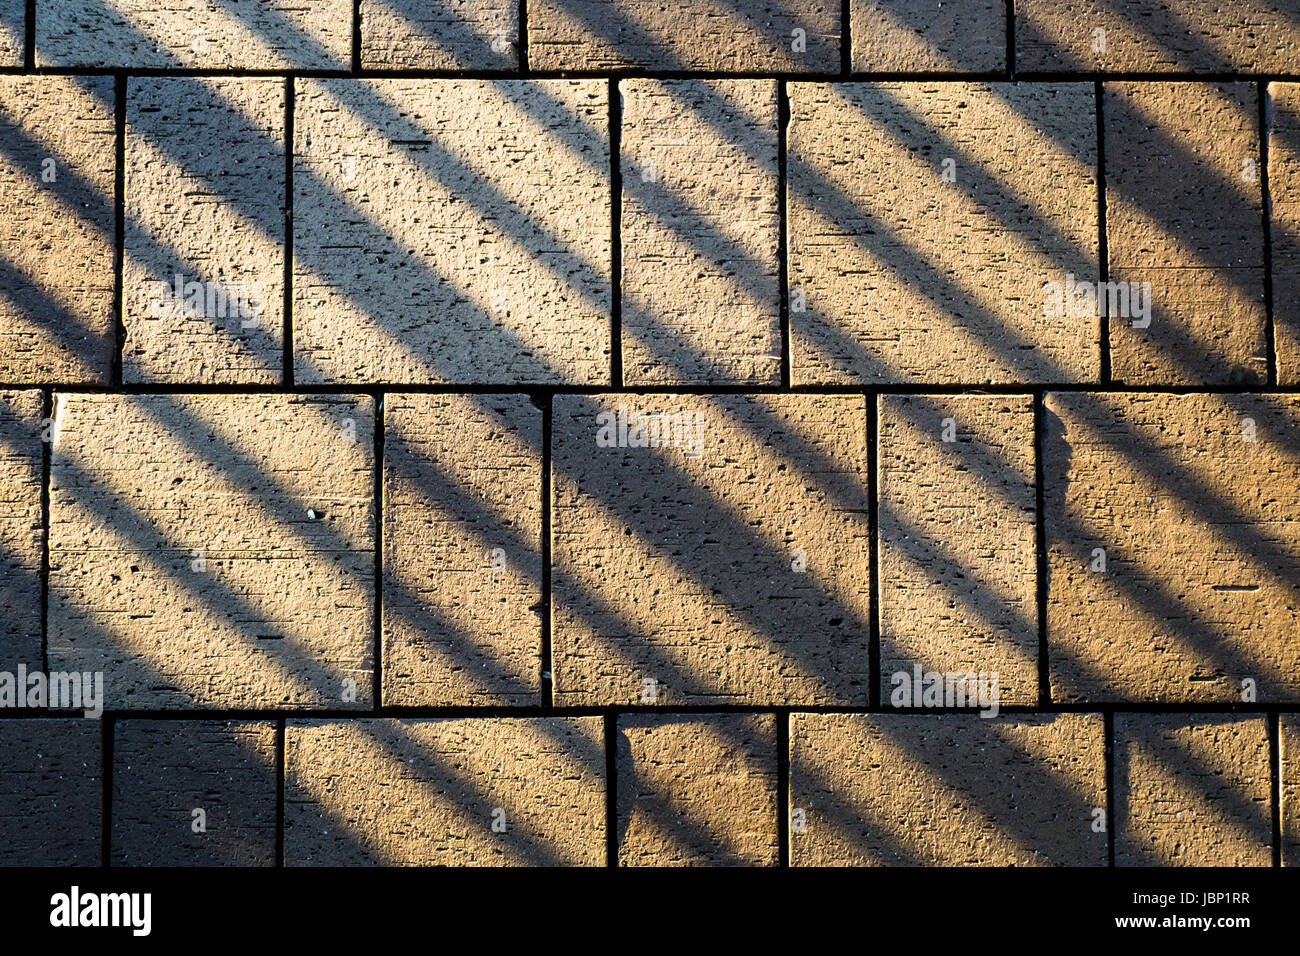 Paving stones of concrete laid on ground illuminated by sun and with railing shadow lines at an angle - Stock Image